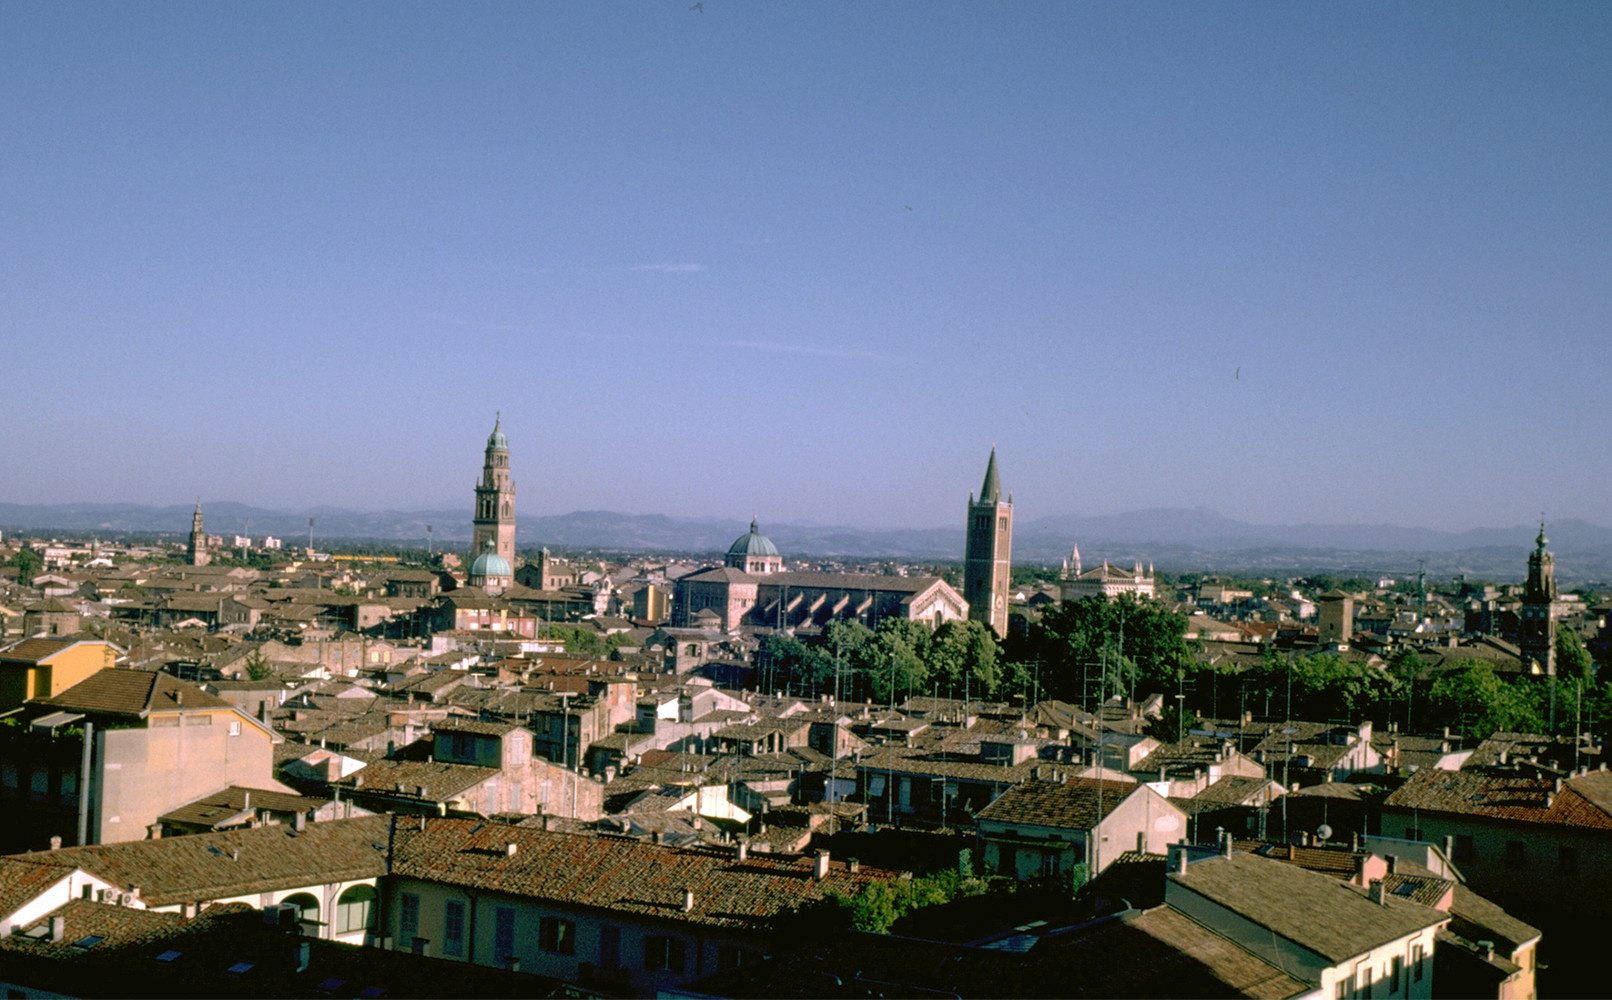 Parma,<br>photo by Pietro Ronchini